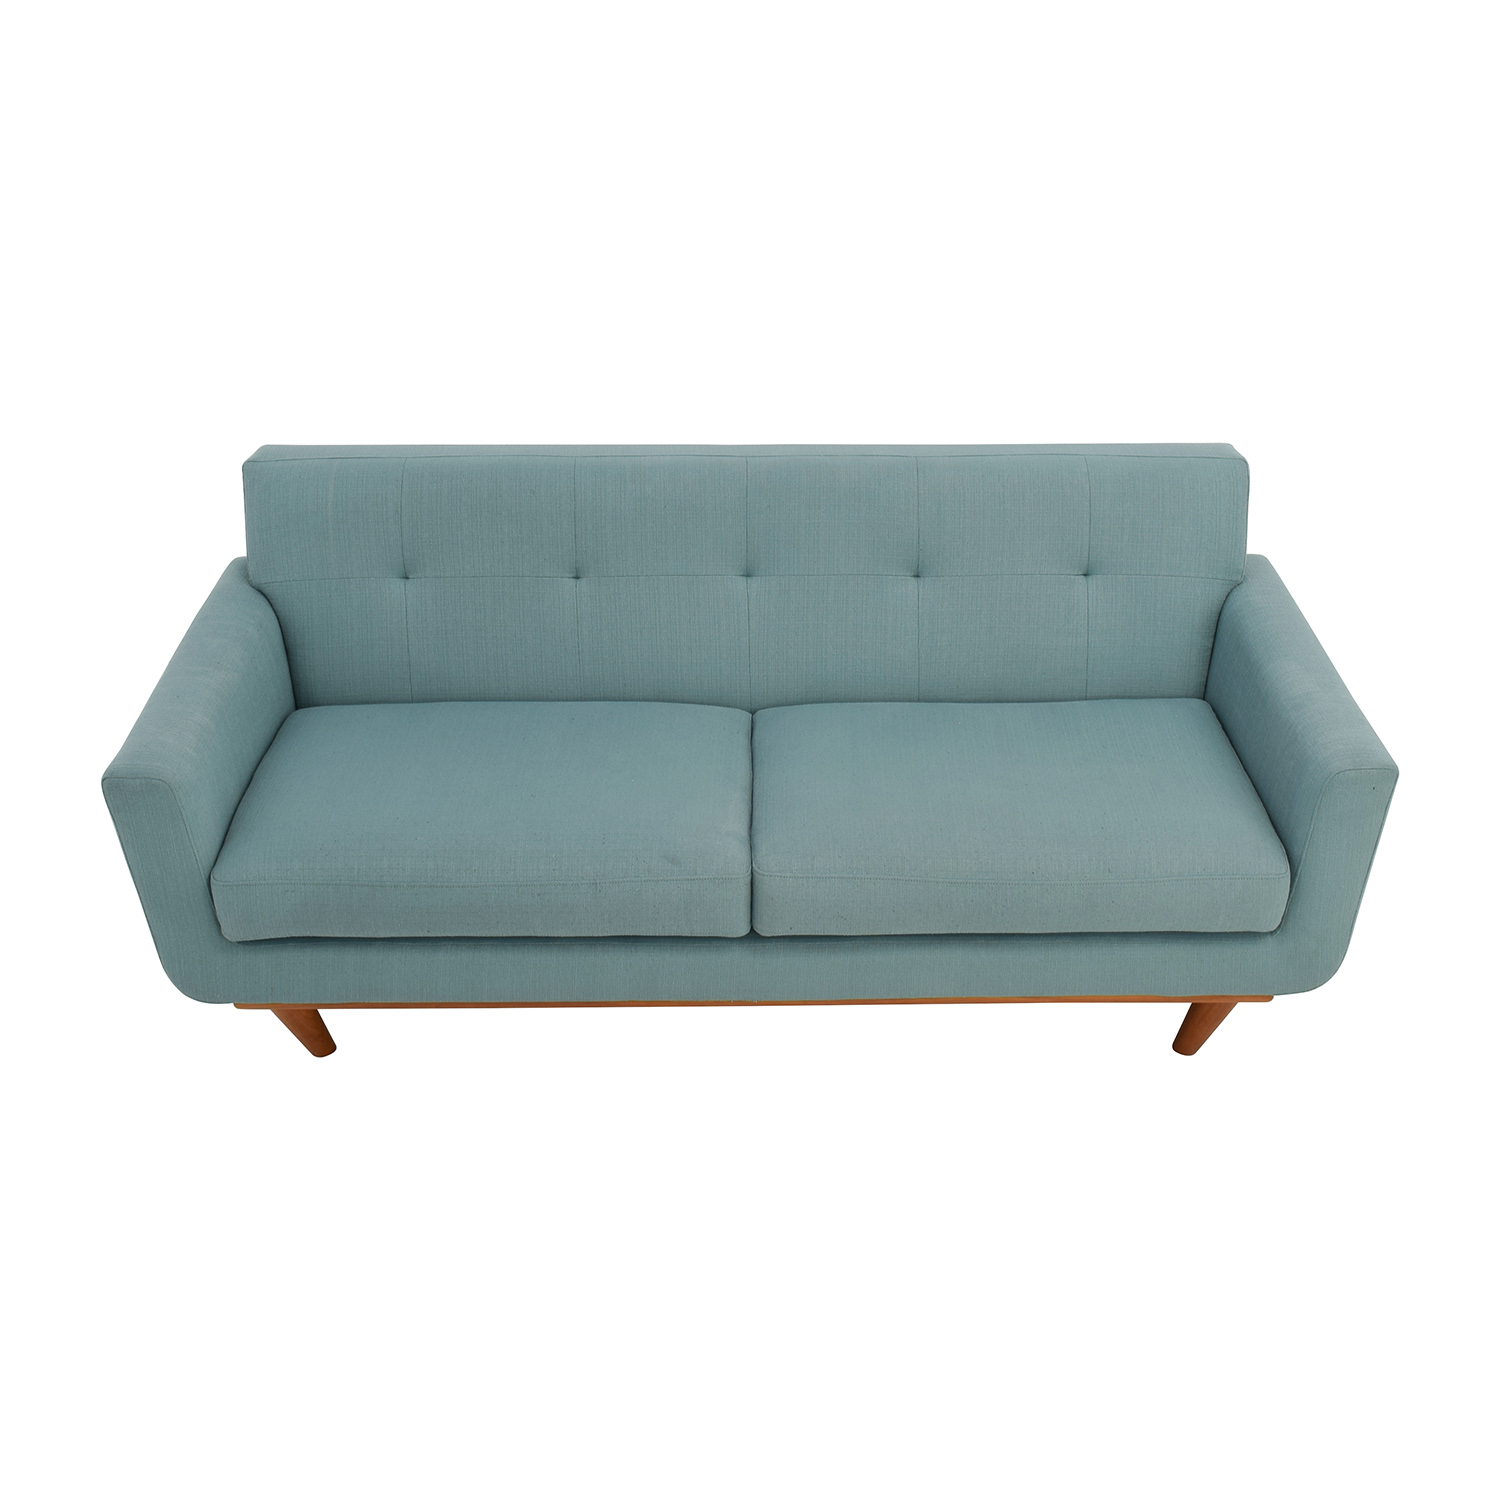 Fresh teal sofas for sale marmsweb marmsweb for Teal leather couch